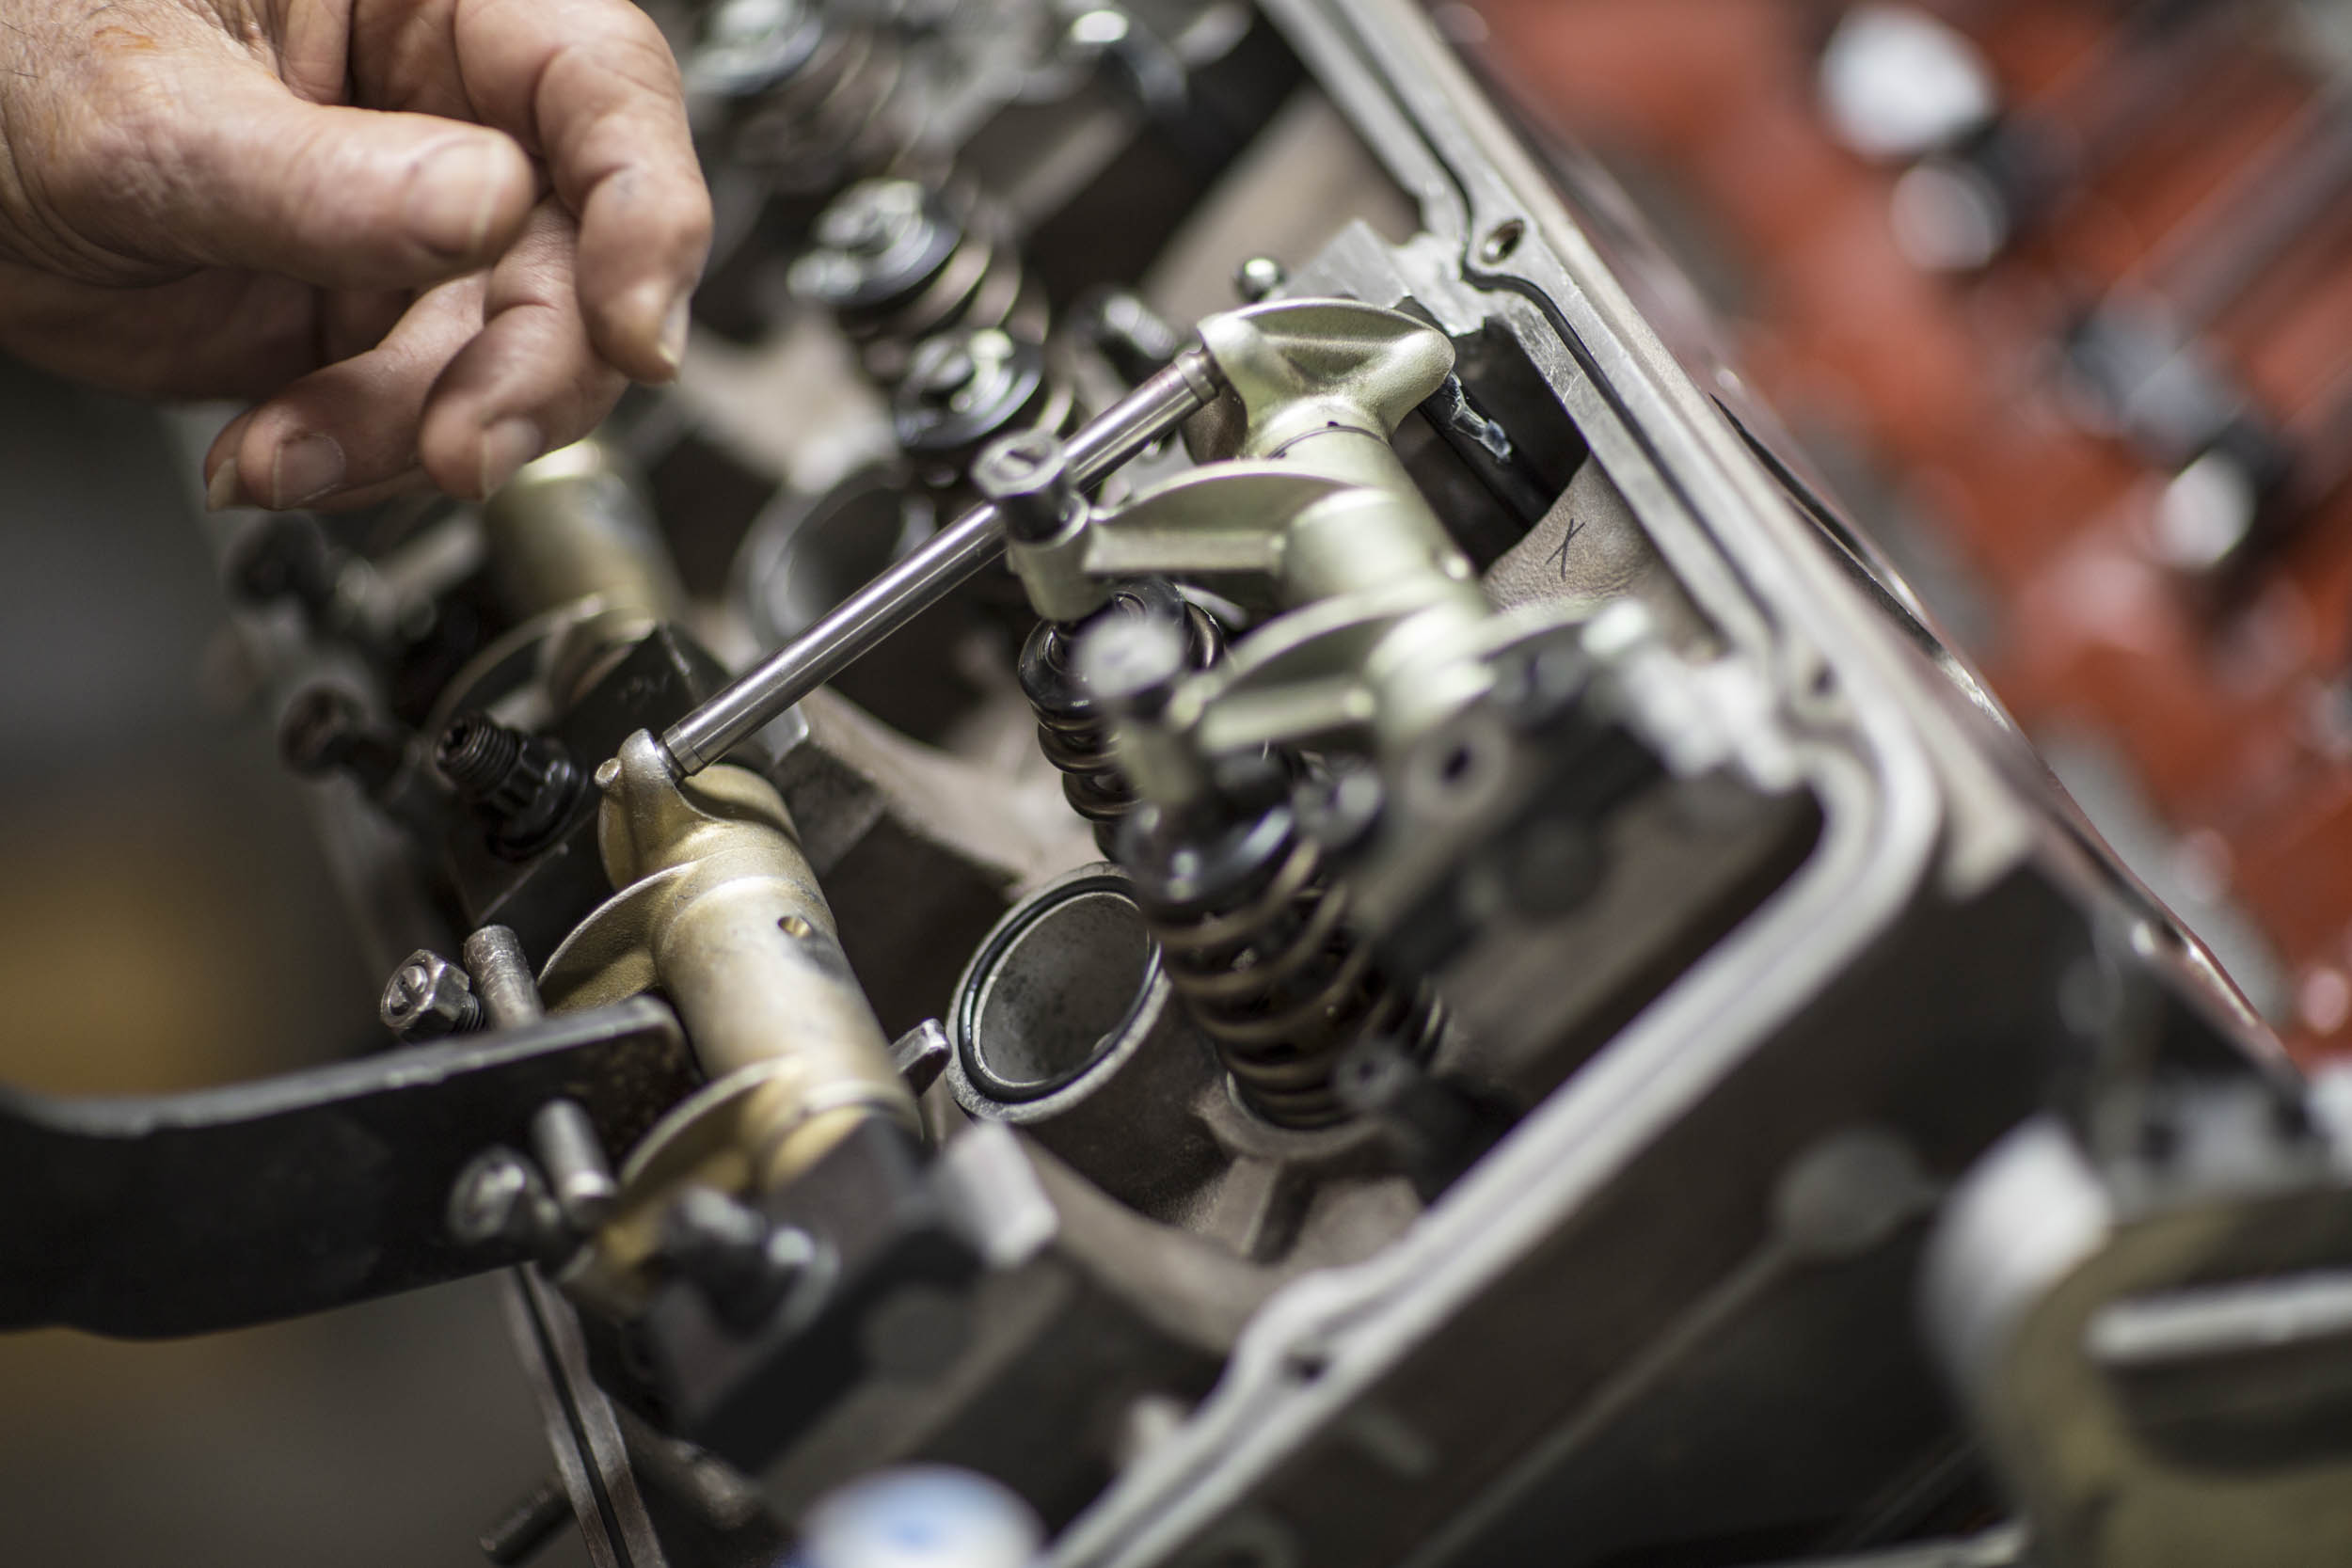 """Ofria demonstrates the workings of the """"Thunder Power,"""" a 32-valve head conversion he designed for the big-block Chevy."""